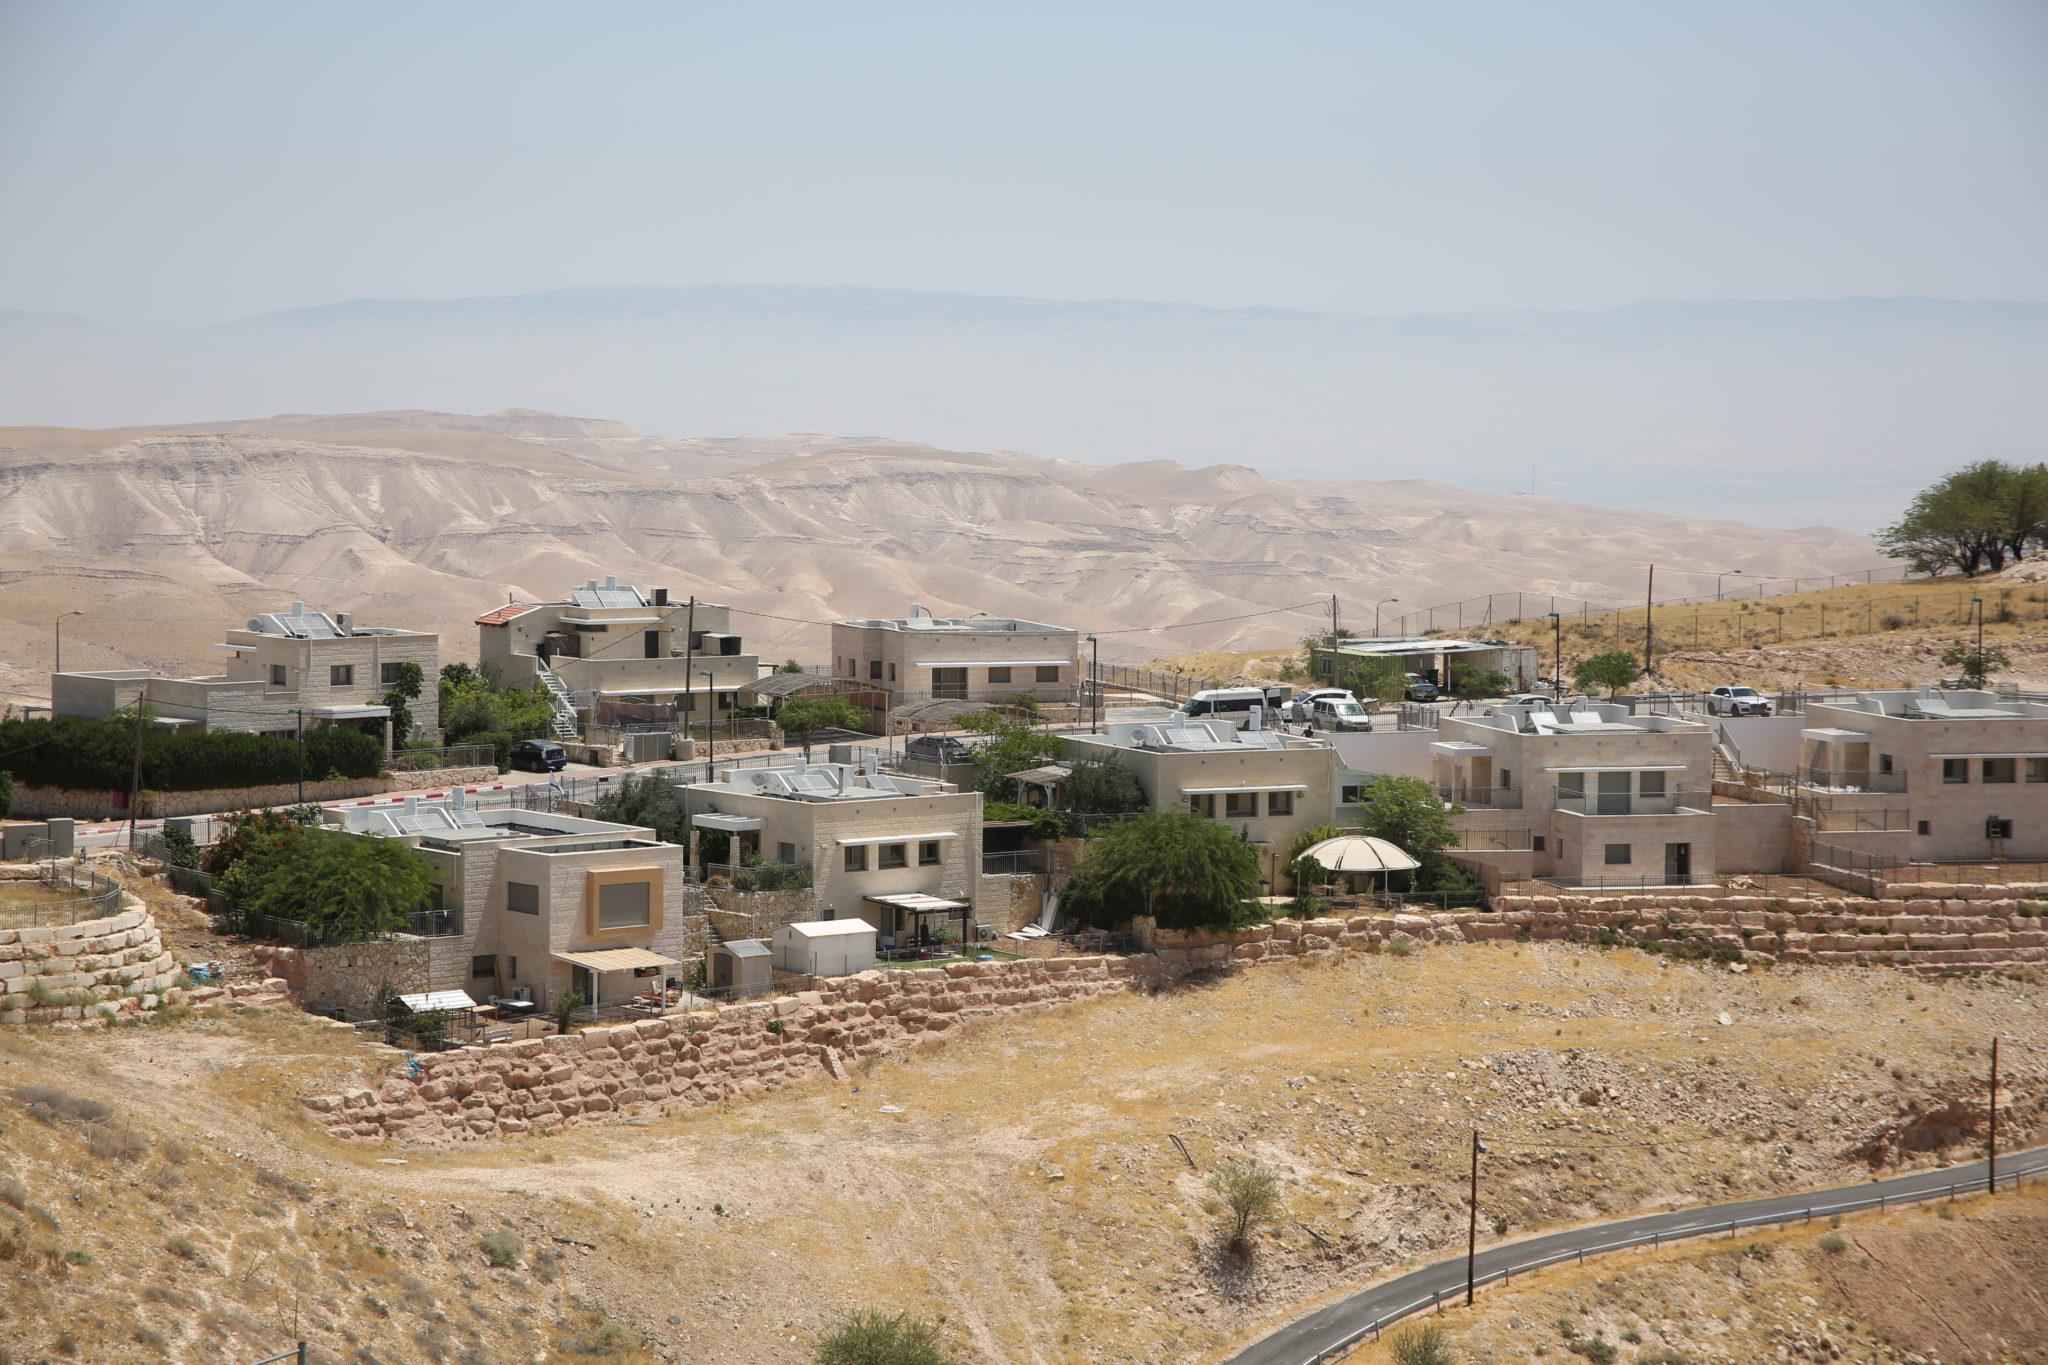 Pompeo announcement on Israeli Settlements Places Occupied Palestinians At Increased Risk